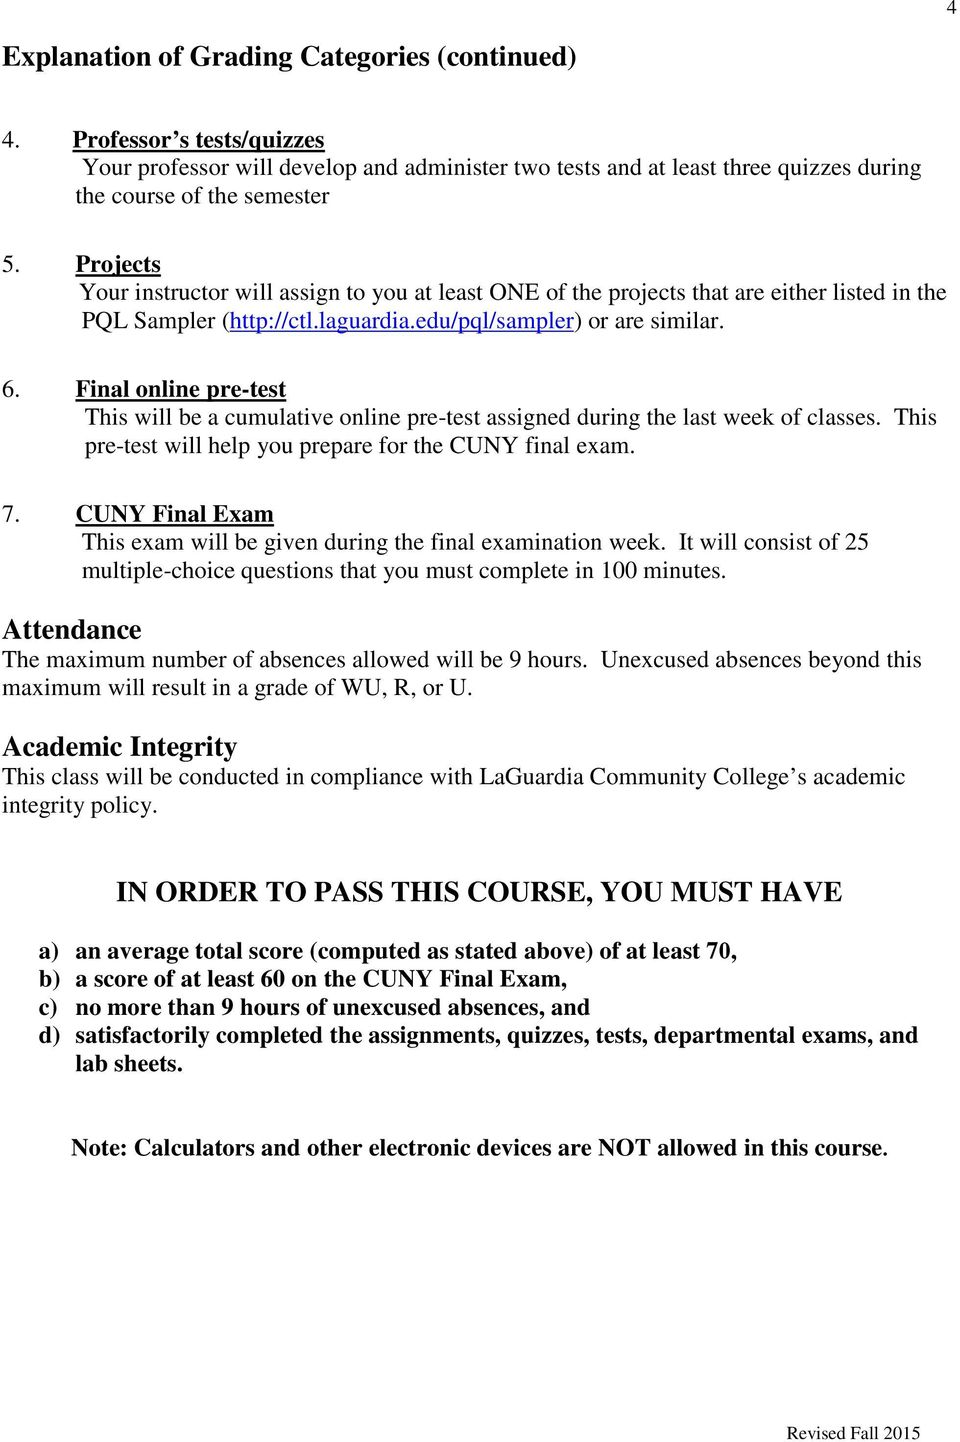 Final online pre-test This will be a cumulative online pre-test assigned during the last week of classes. This pre-test will help you prepare for the CUNY final exam. 7.